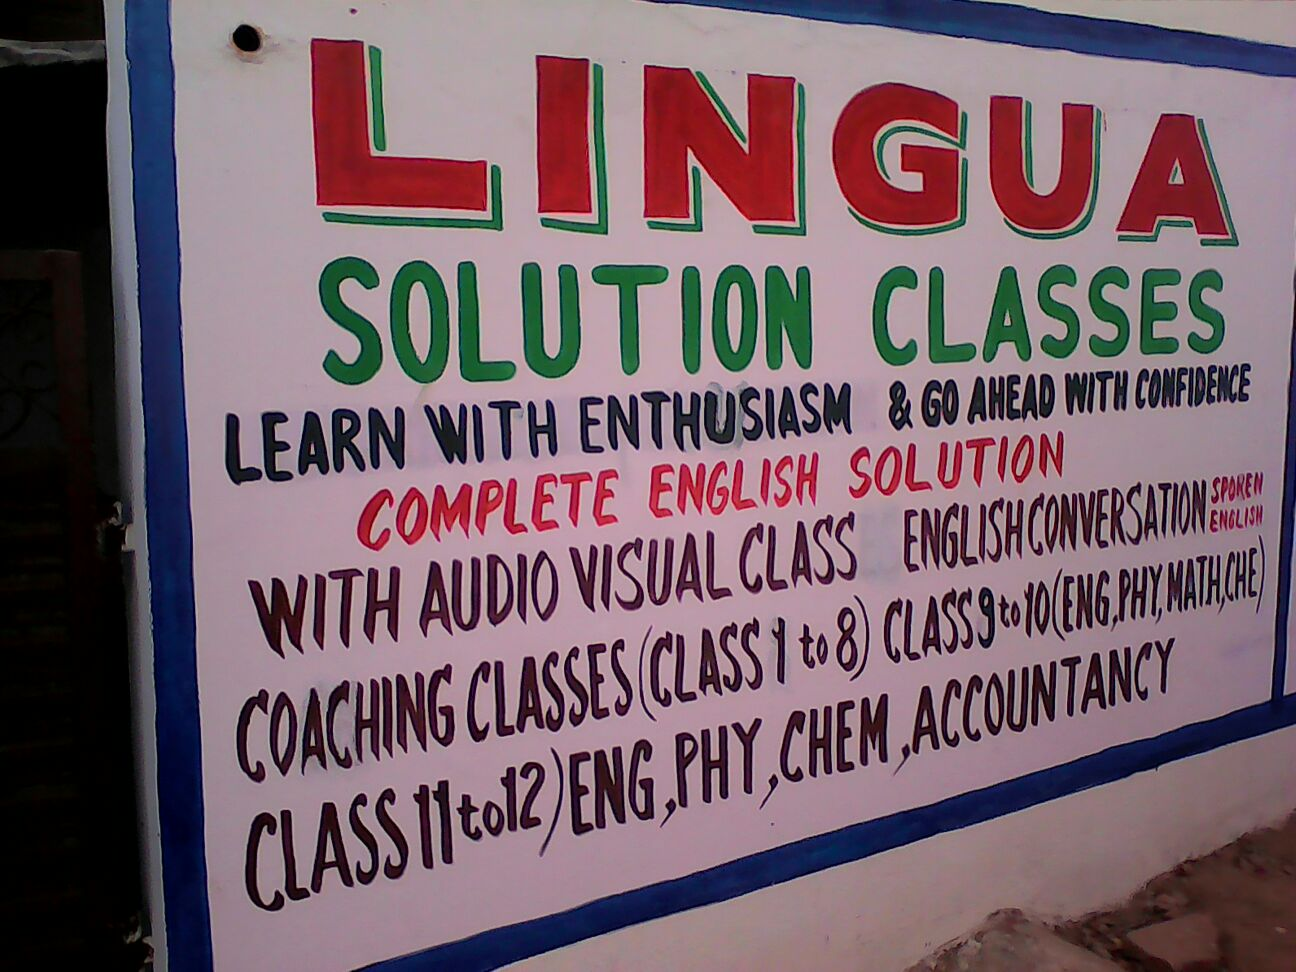 LINGUA SOLUTION CLASSES IN RANCHI